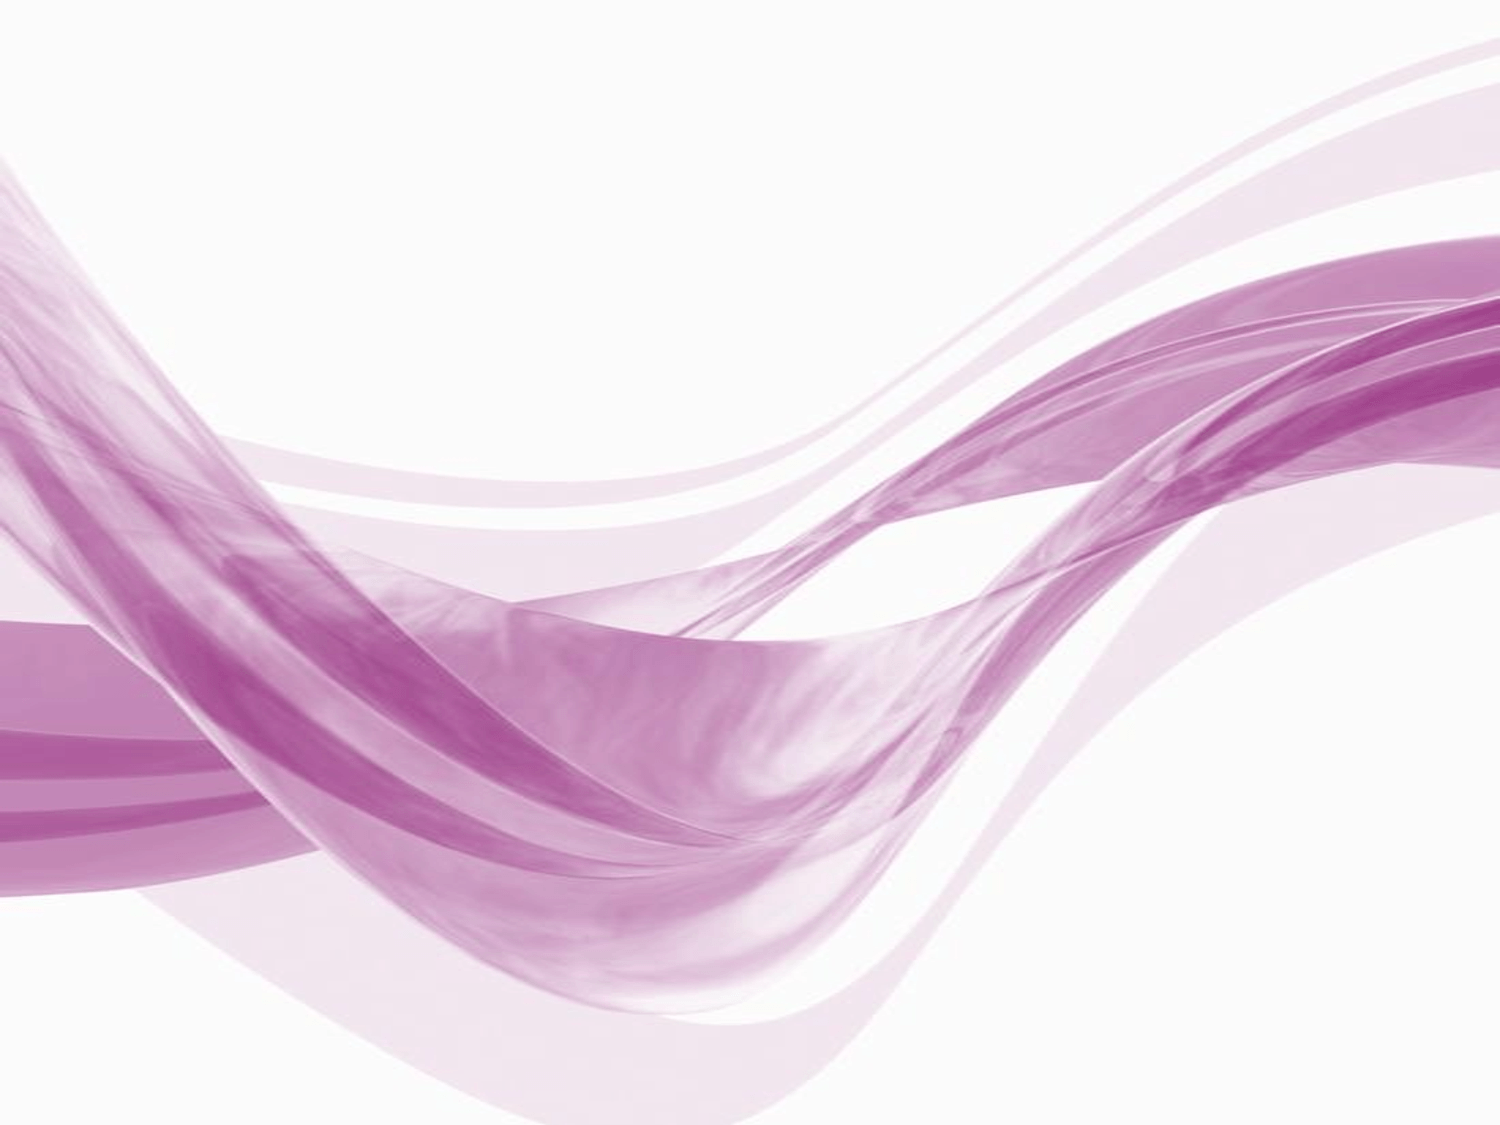 purple swirl background stock - photo #28